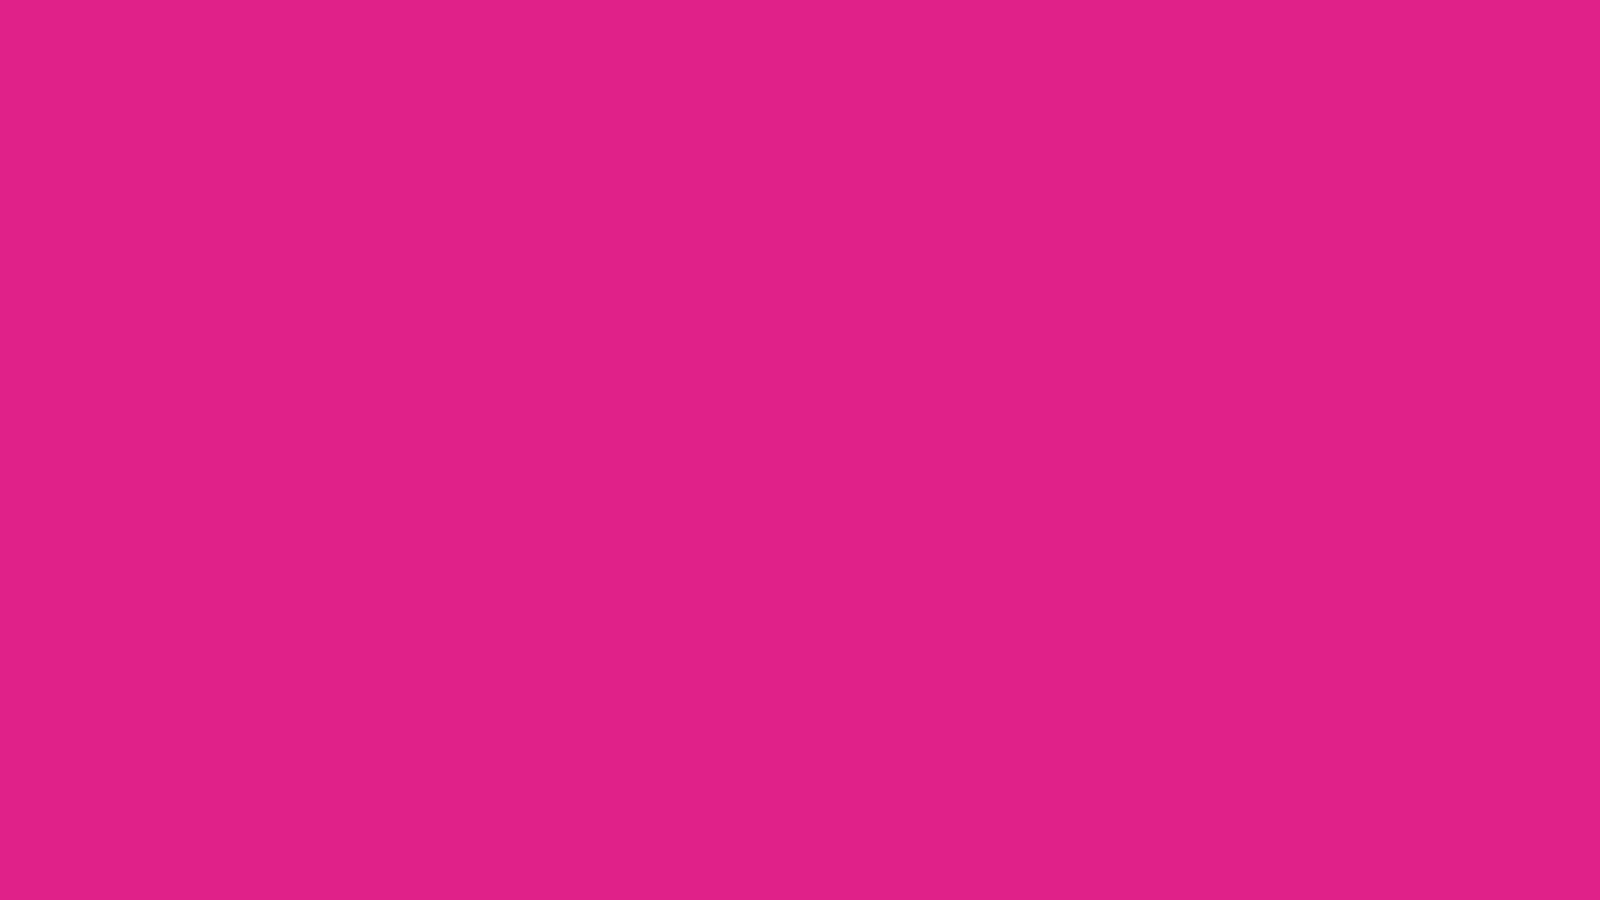 1600x900 Barbie Pink Solid Color Background